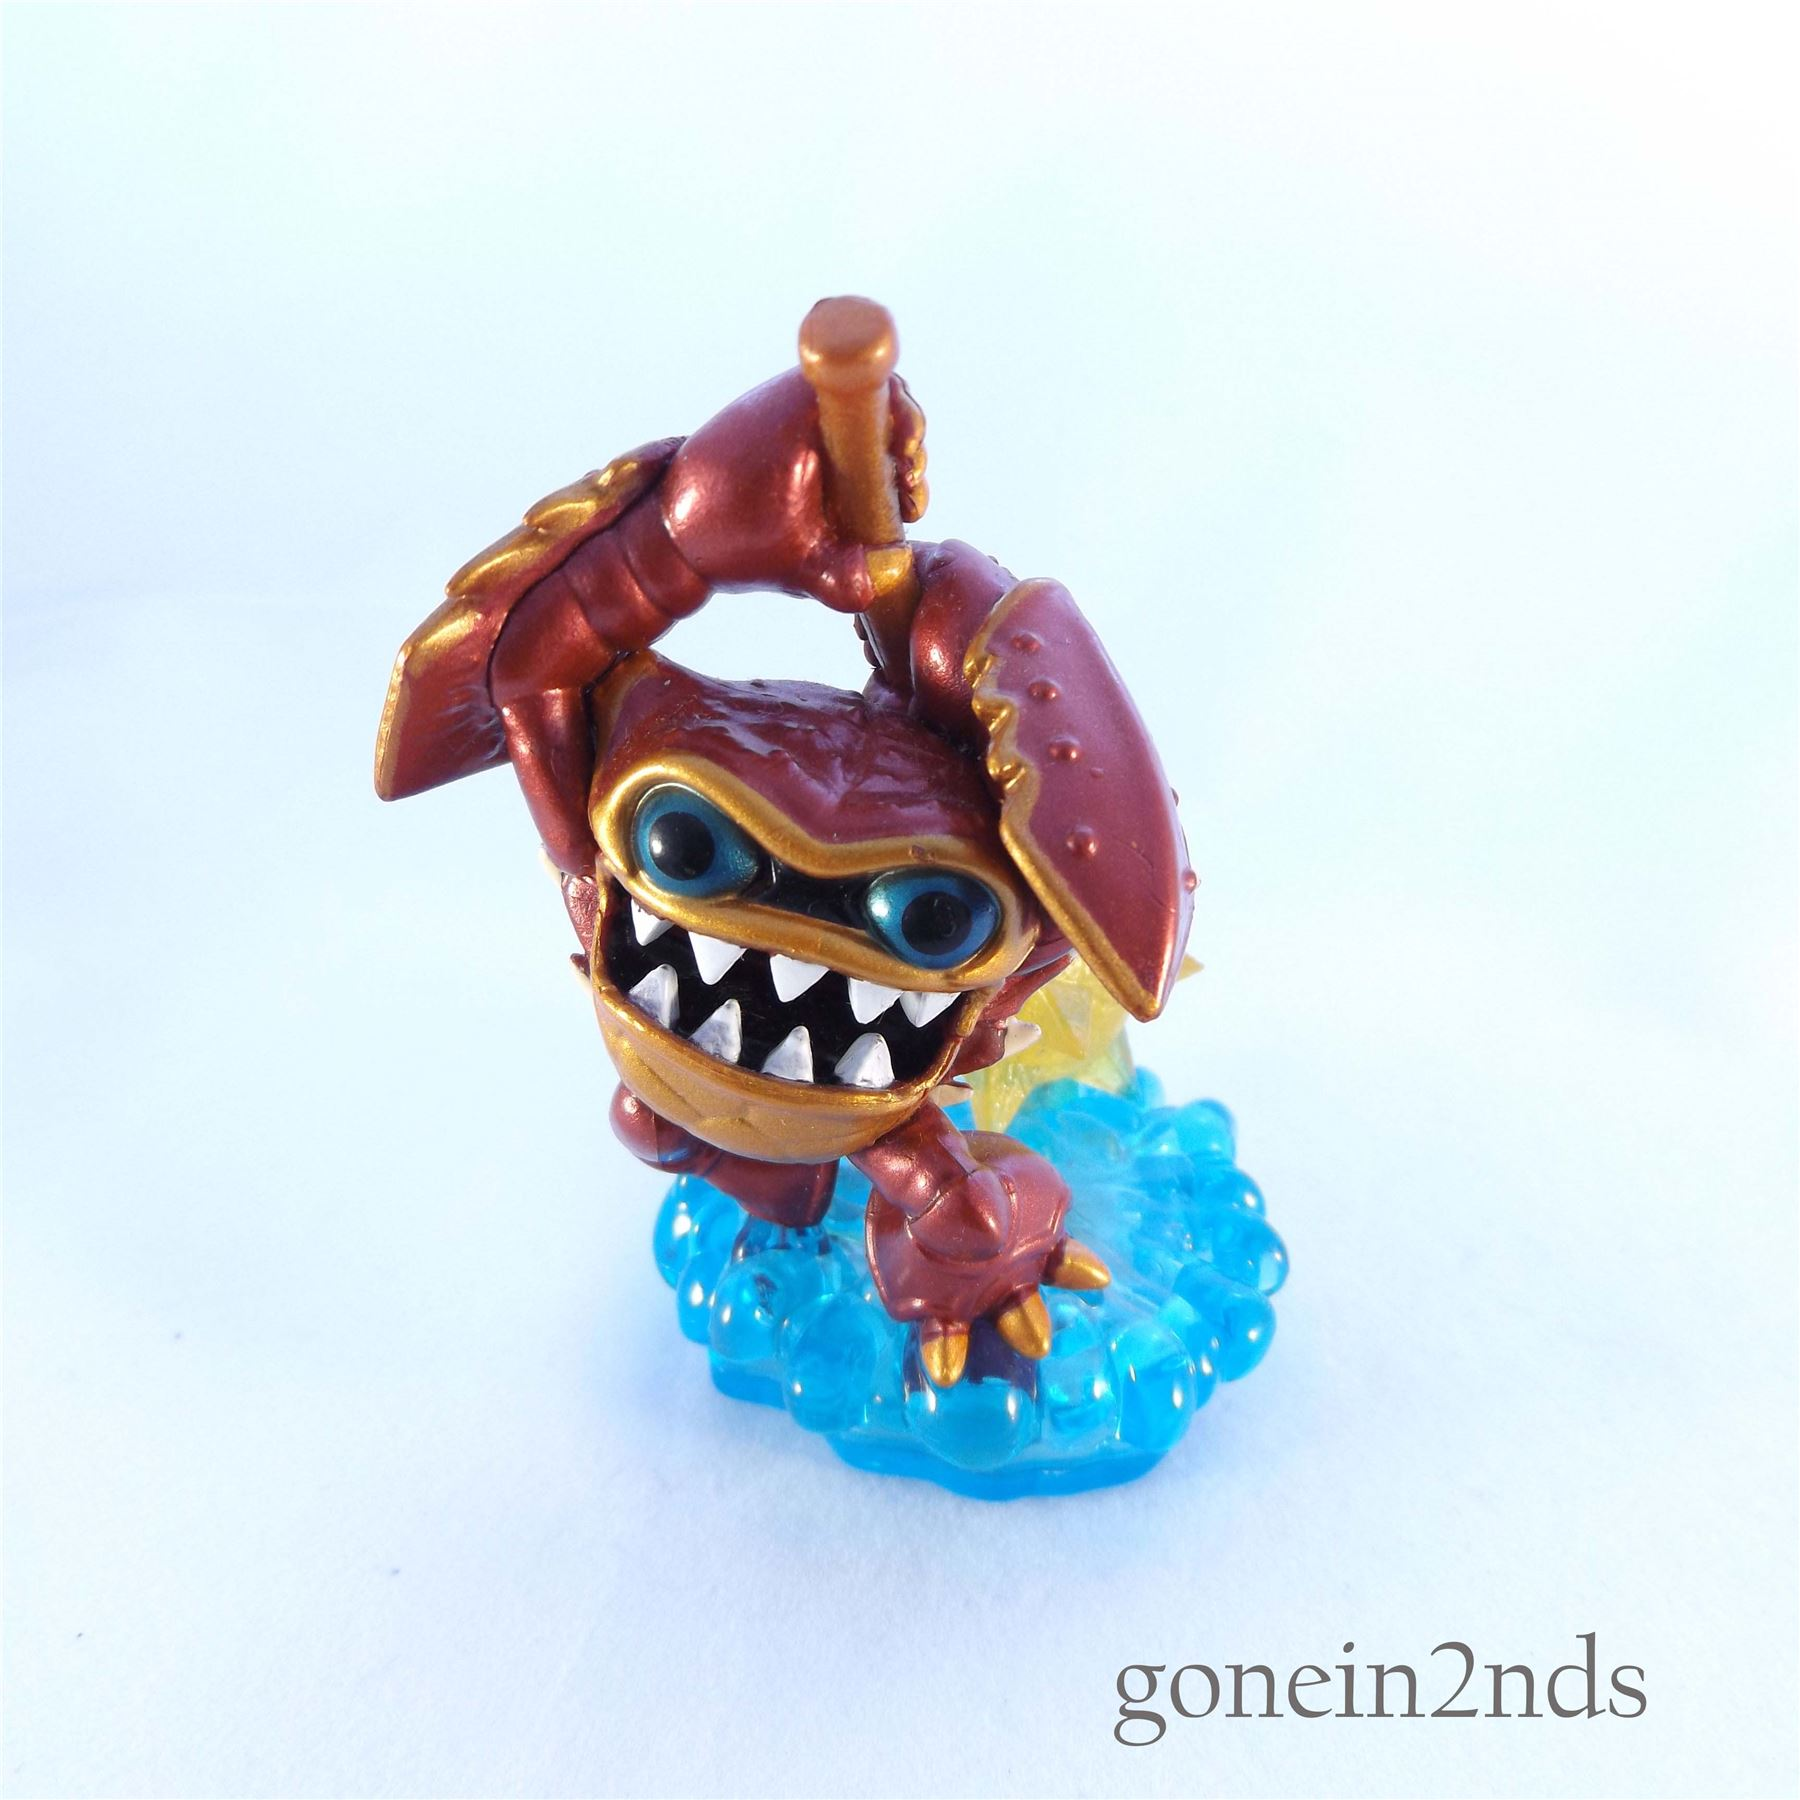 SKYLANDERS-SWAP-FORCE-FIGURES-TRAP-TEAM-SWAP-FORCE-SUPERCHARGE-IMAGINATORS